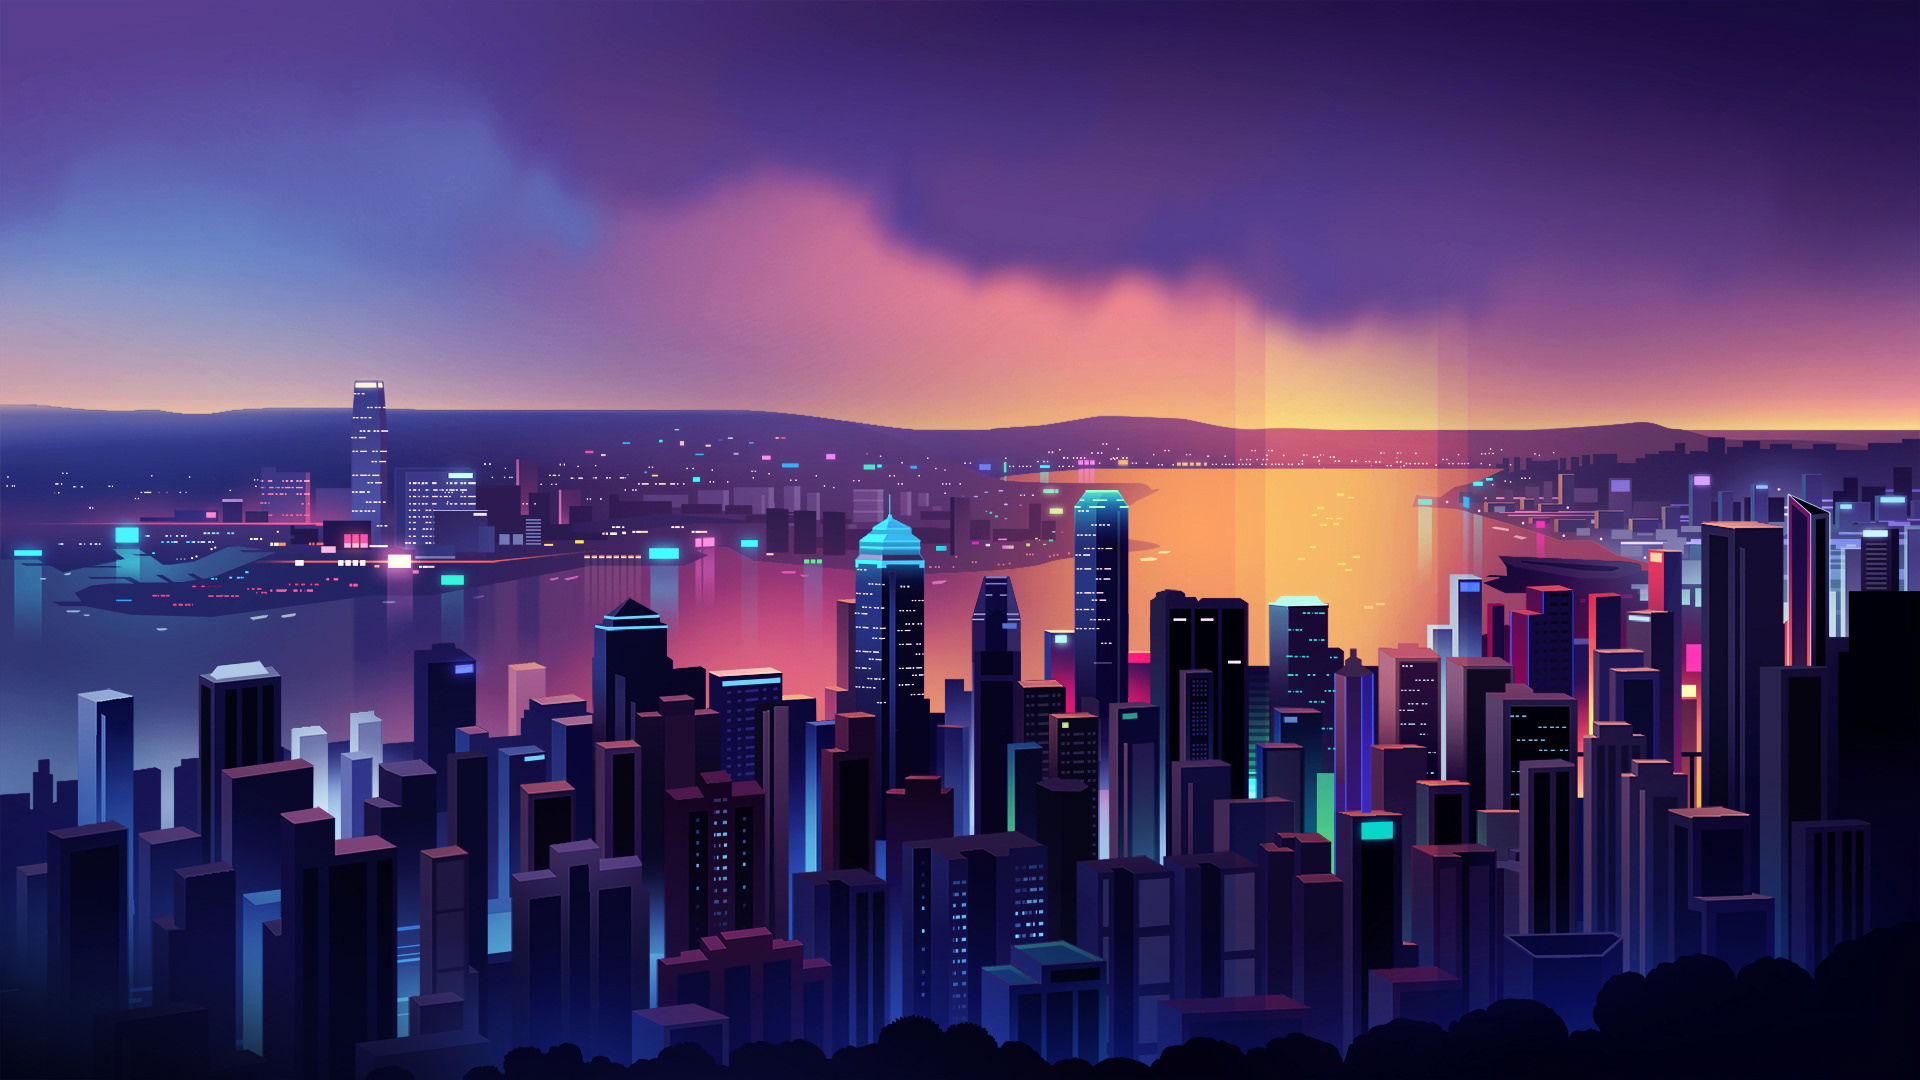 Neon Hong Kong Skyline By Romain Trystram 1920x1080 Music Indieartist Chicago Cityscape Skyline Night Illustration